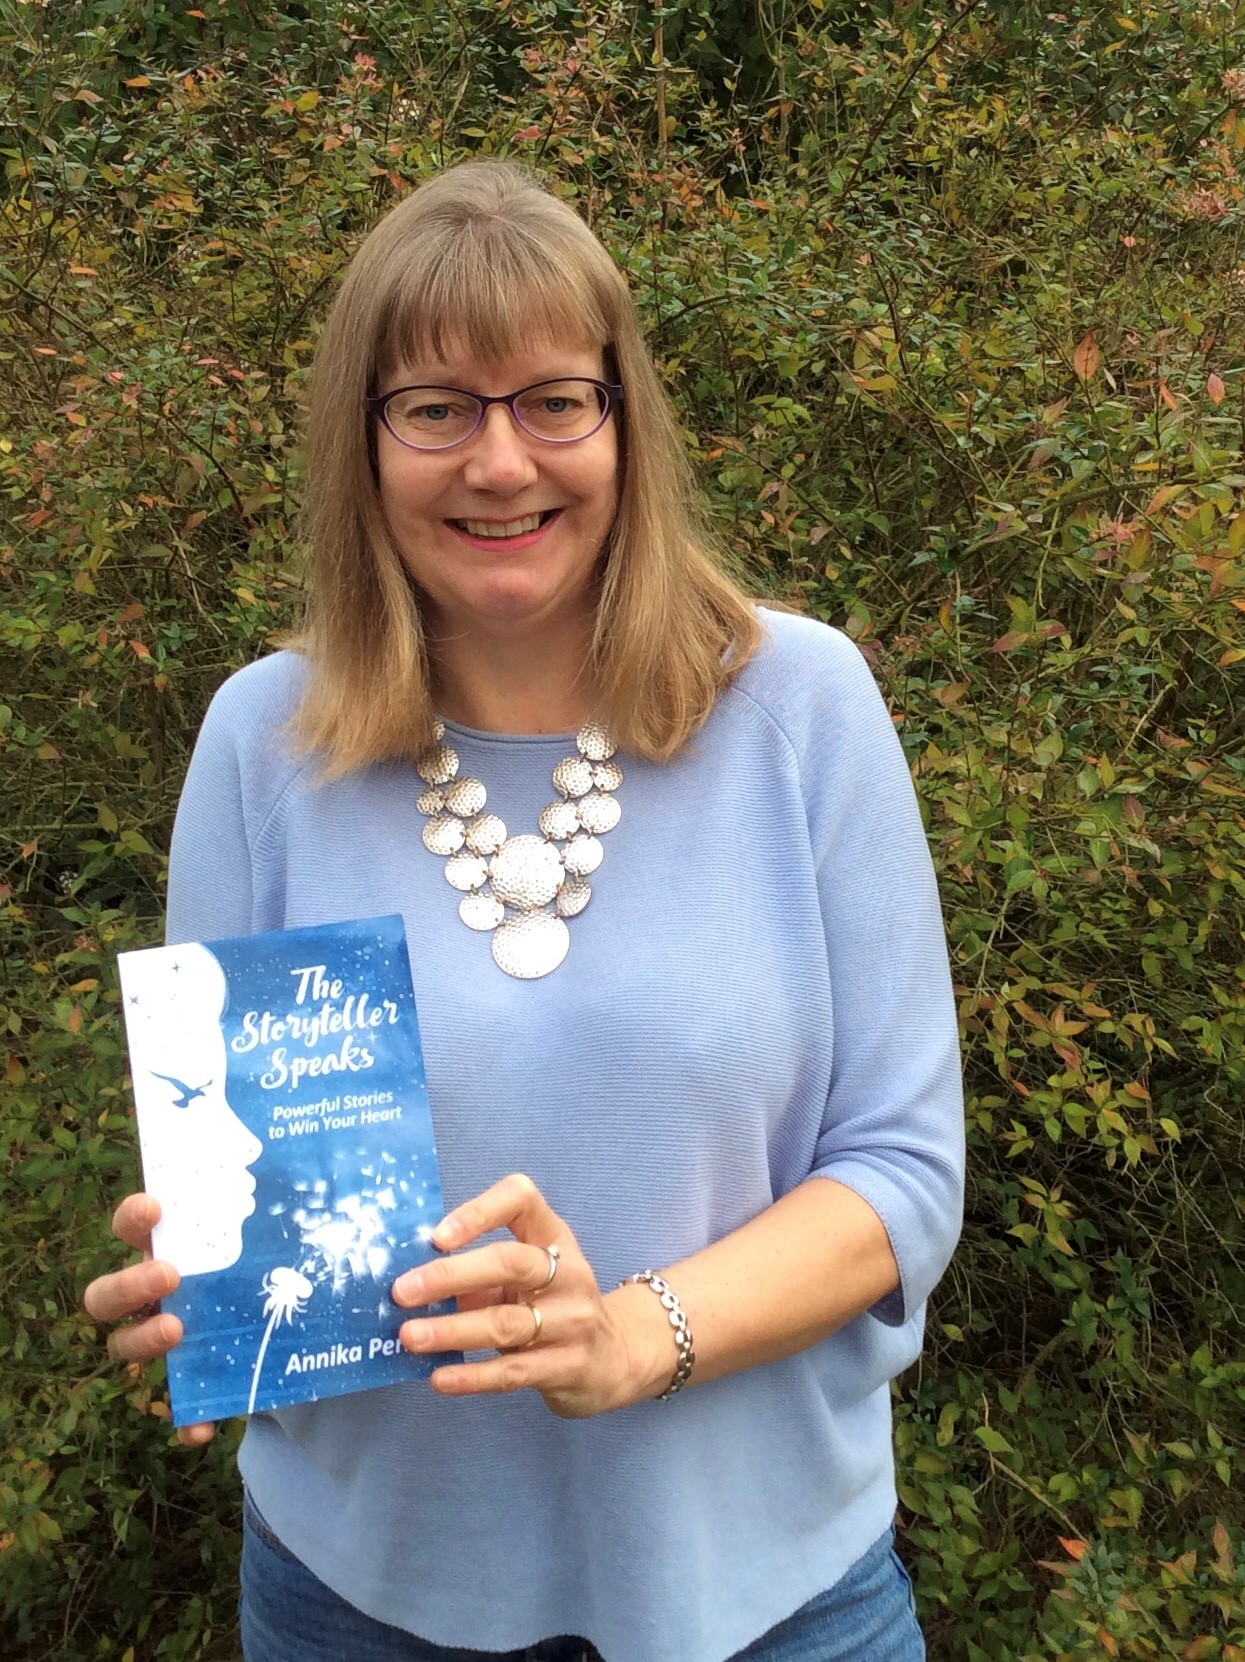 Annika Perry has published her very first book